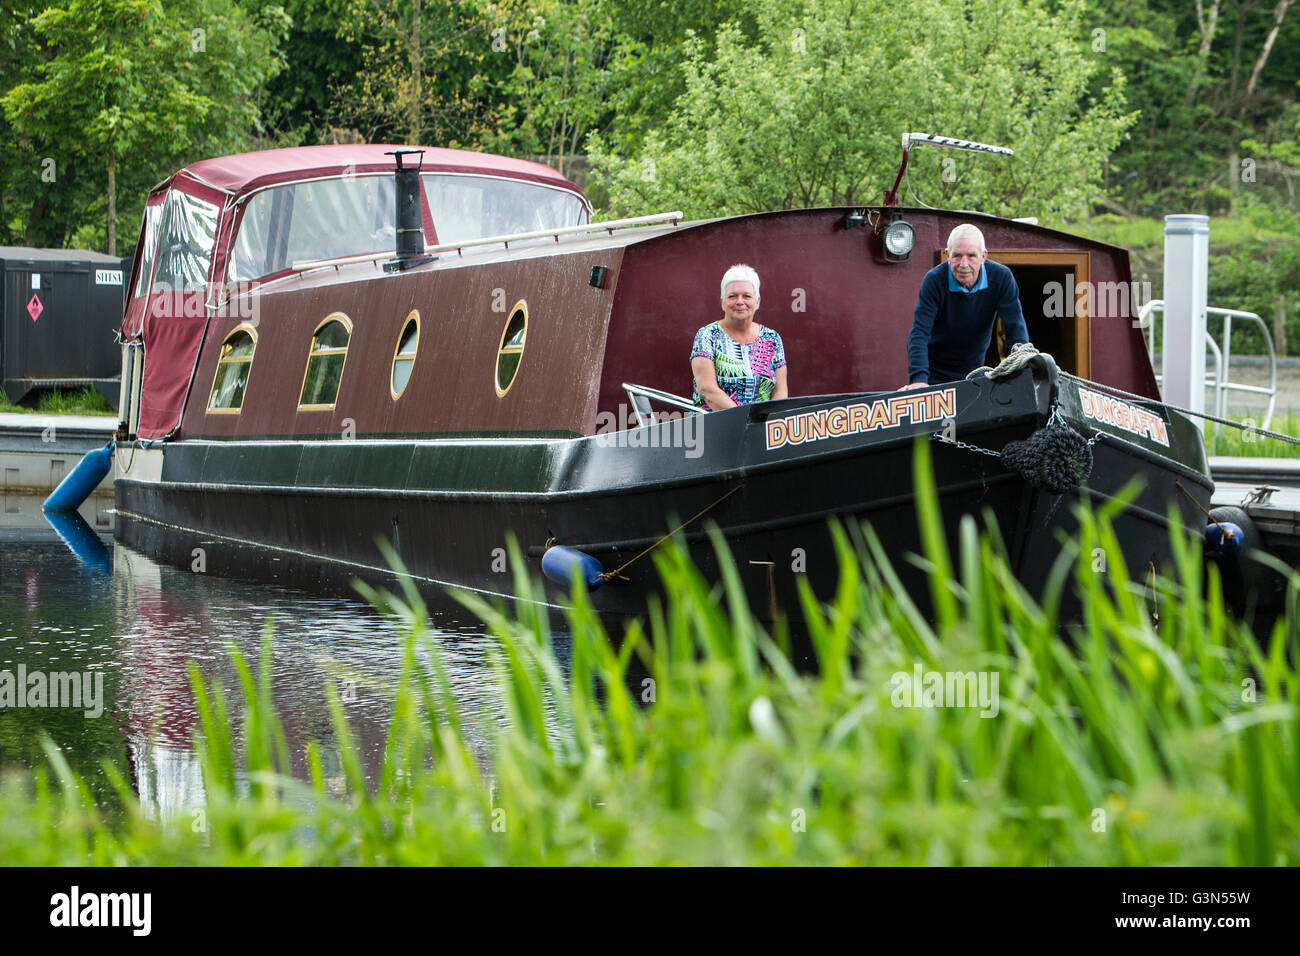 House Boat on Forth and Clyde Canal - Stock Image